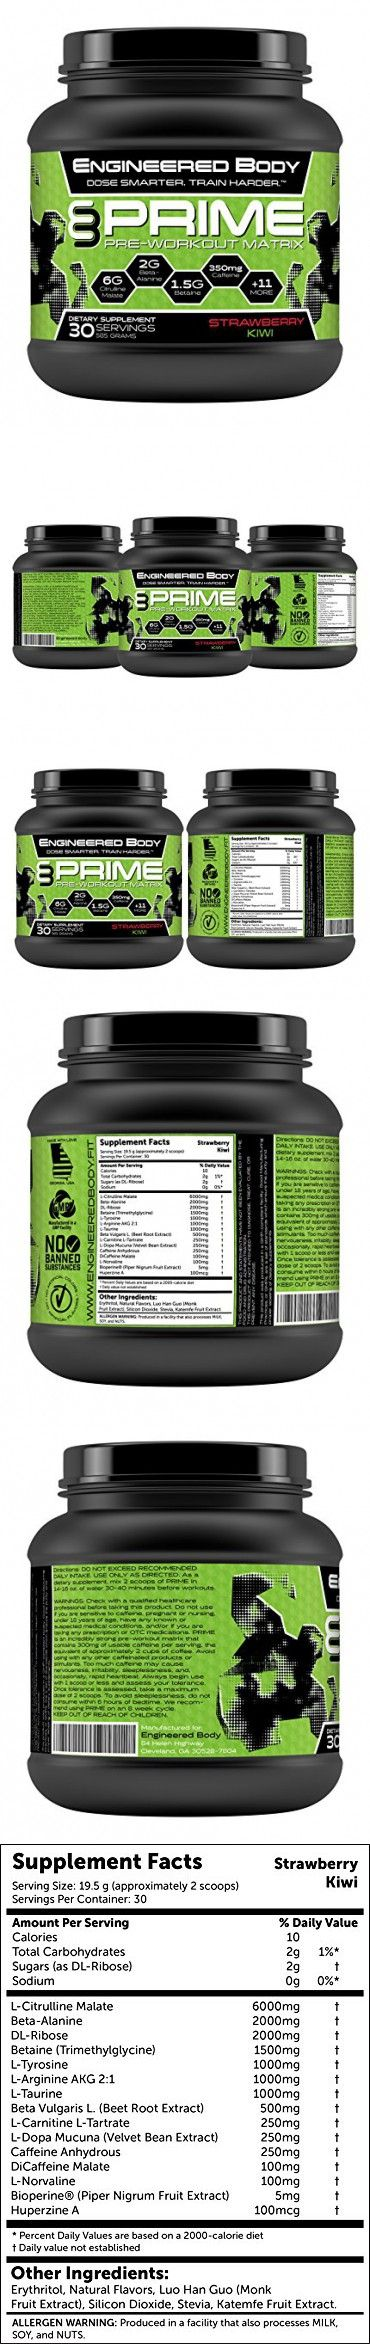 Engineered Body PRIME Natural Pre Workout Supplement for Men and Women - Best Nitric Oxide Booster - Increased Energy - Top Fat Burner - 30 Servings 585 Grams - Creatine Free - Strawberry Kiwi